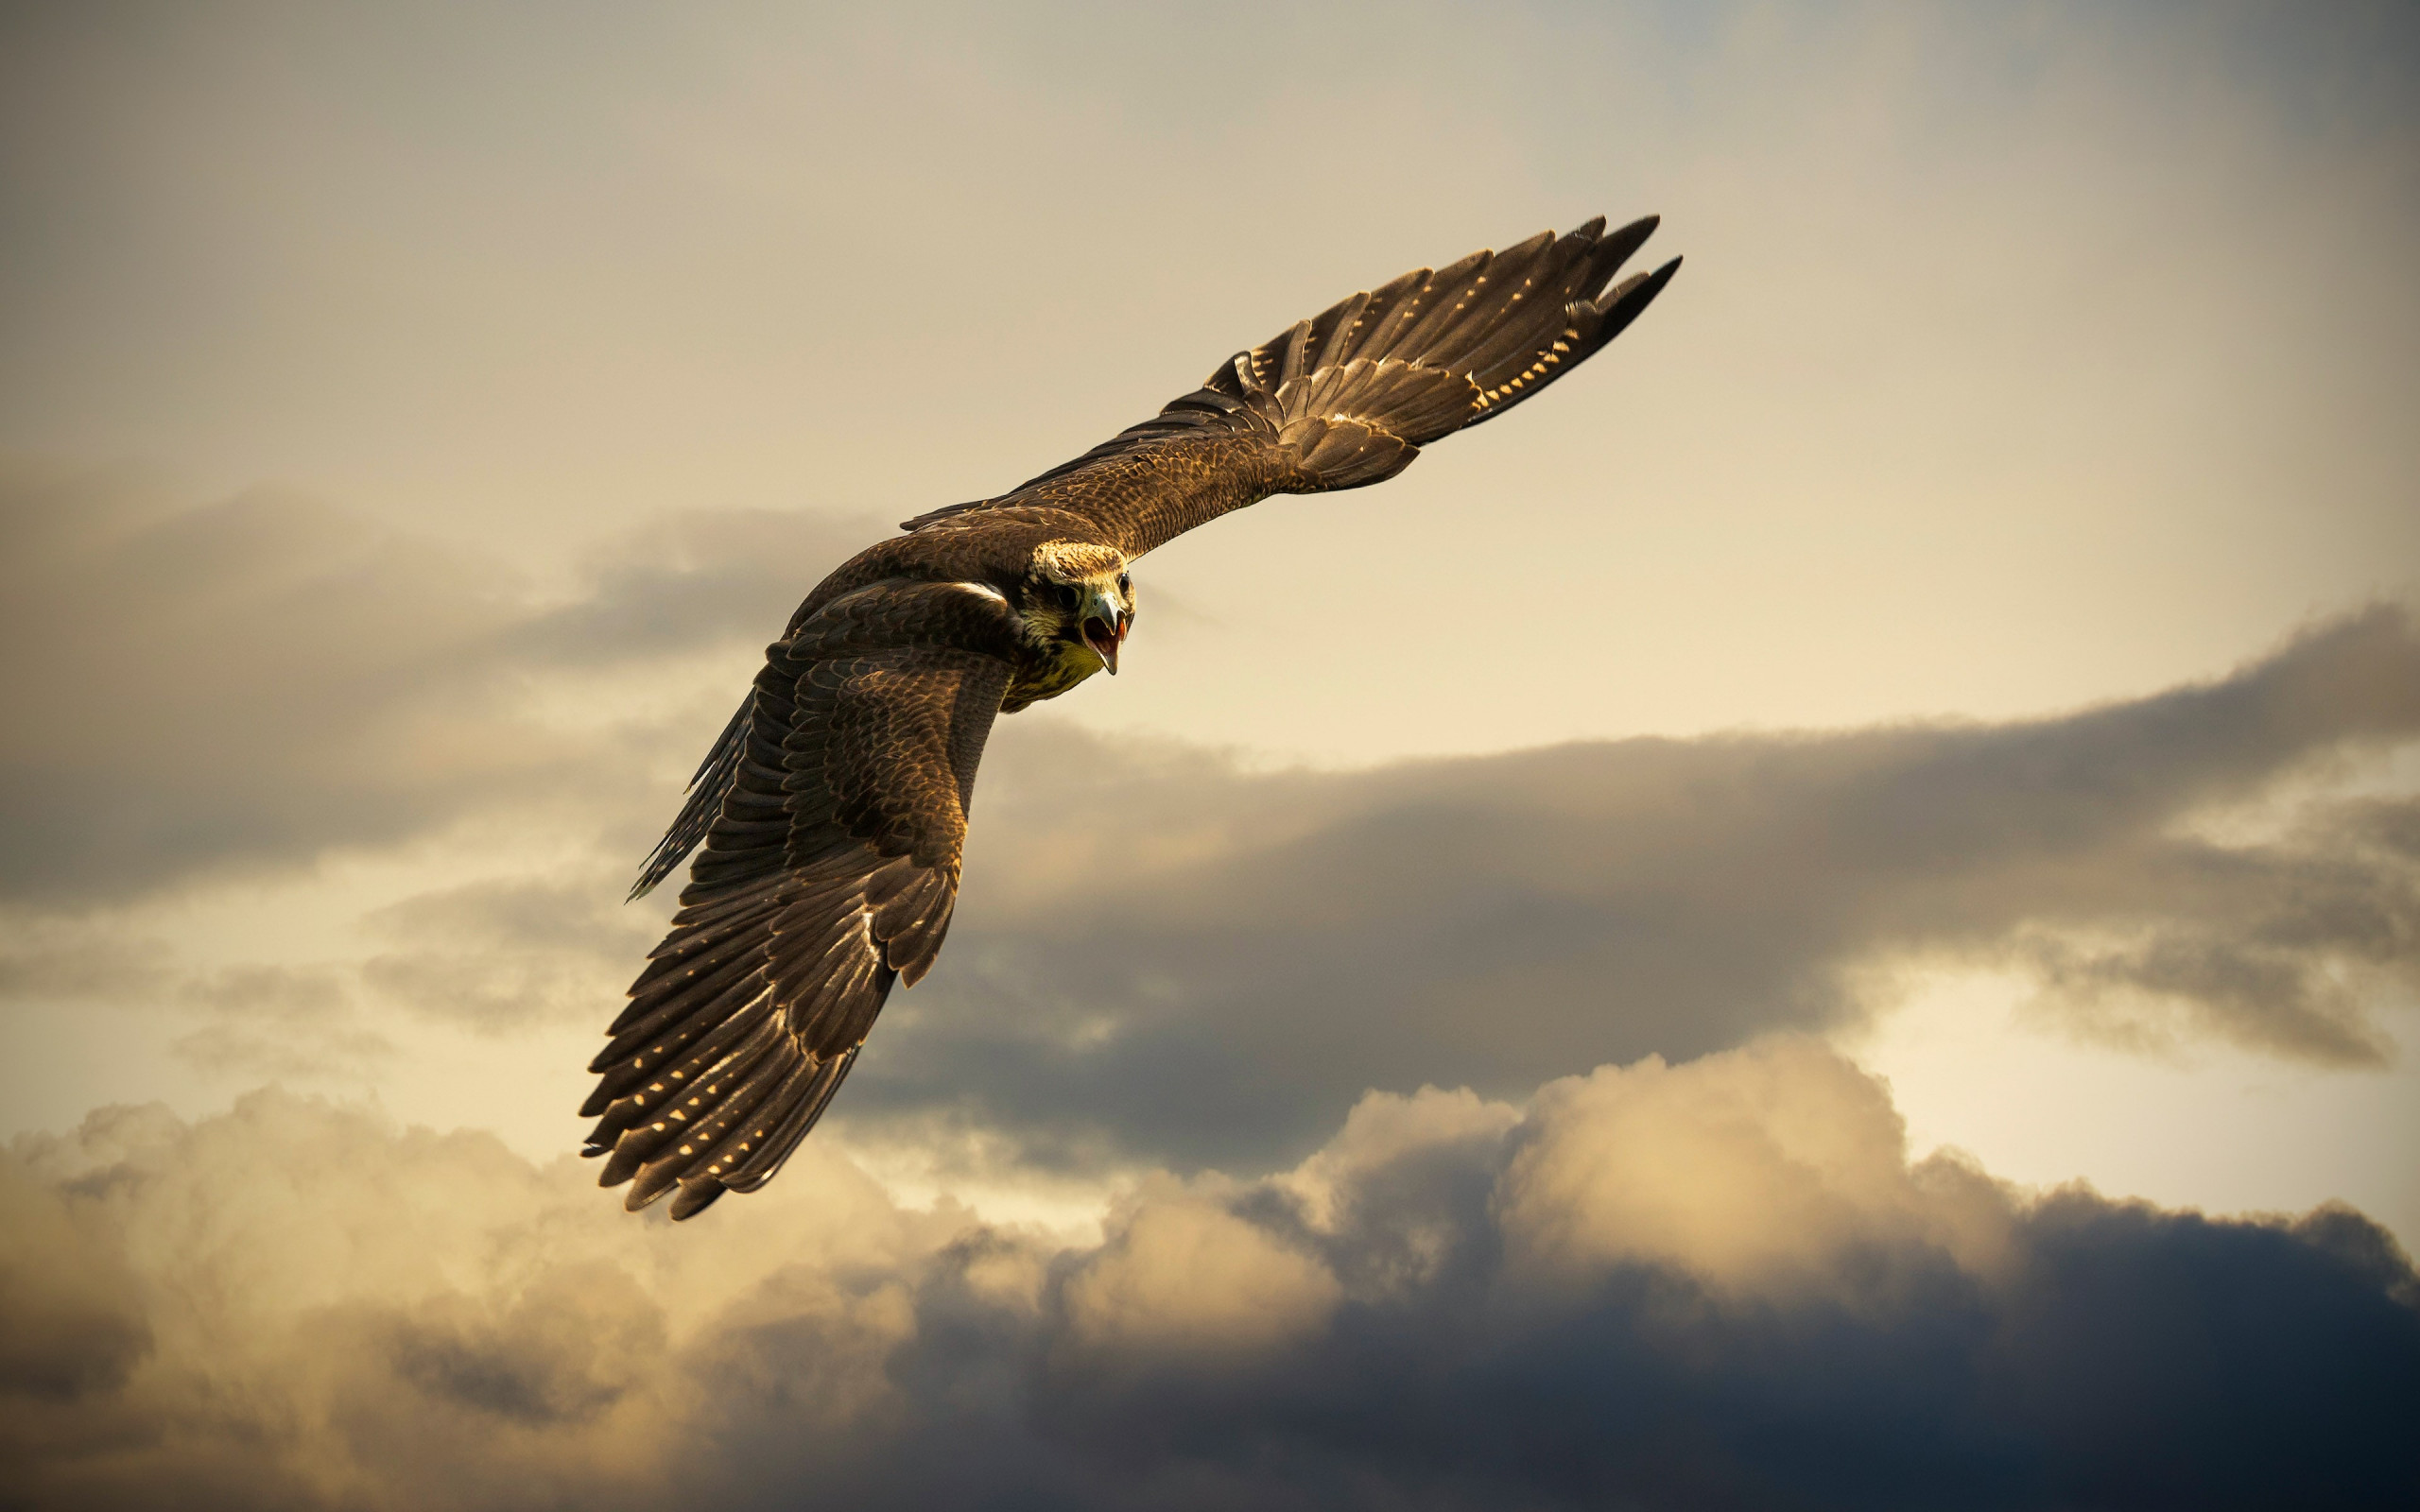 Flying hawk | 2560x1600 wallpaper